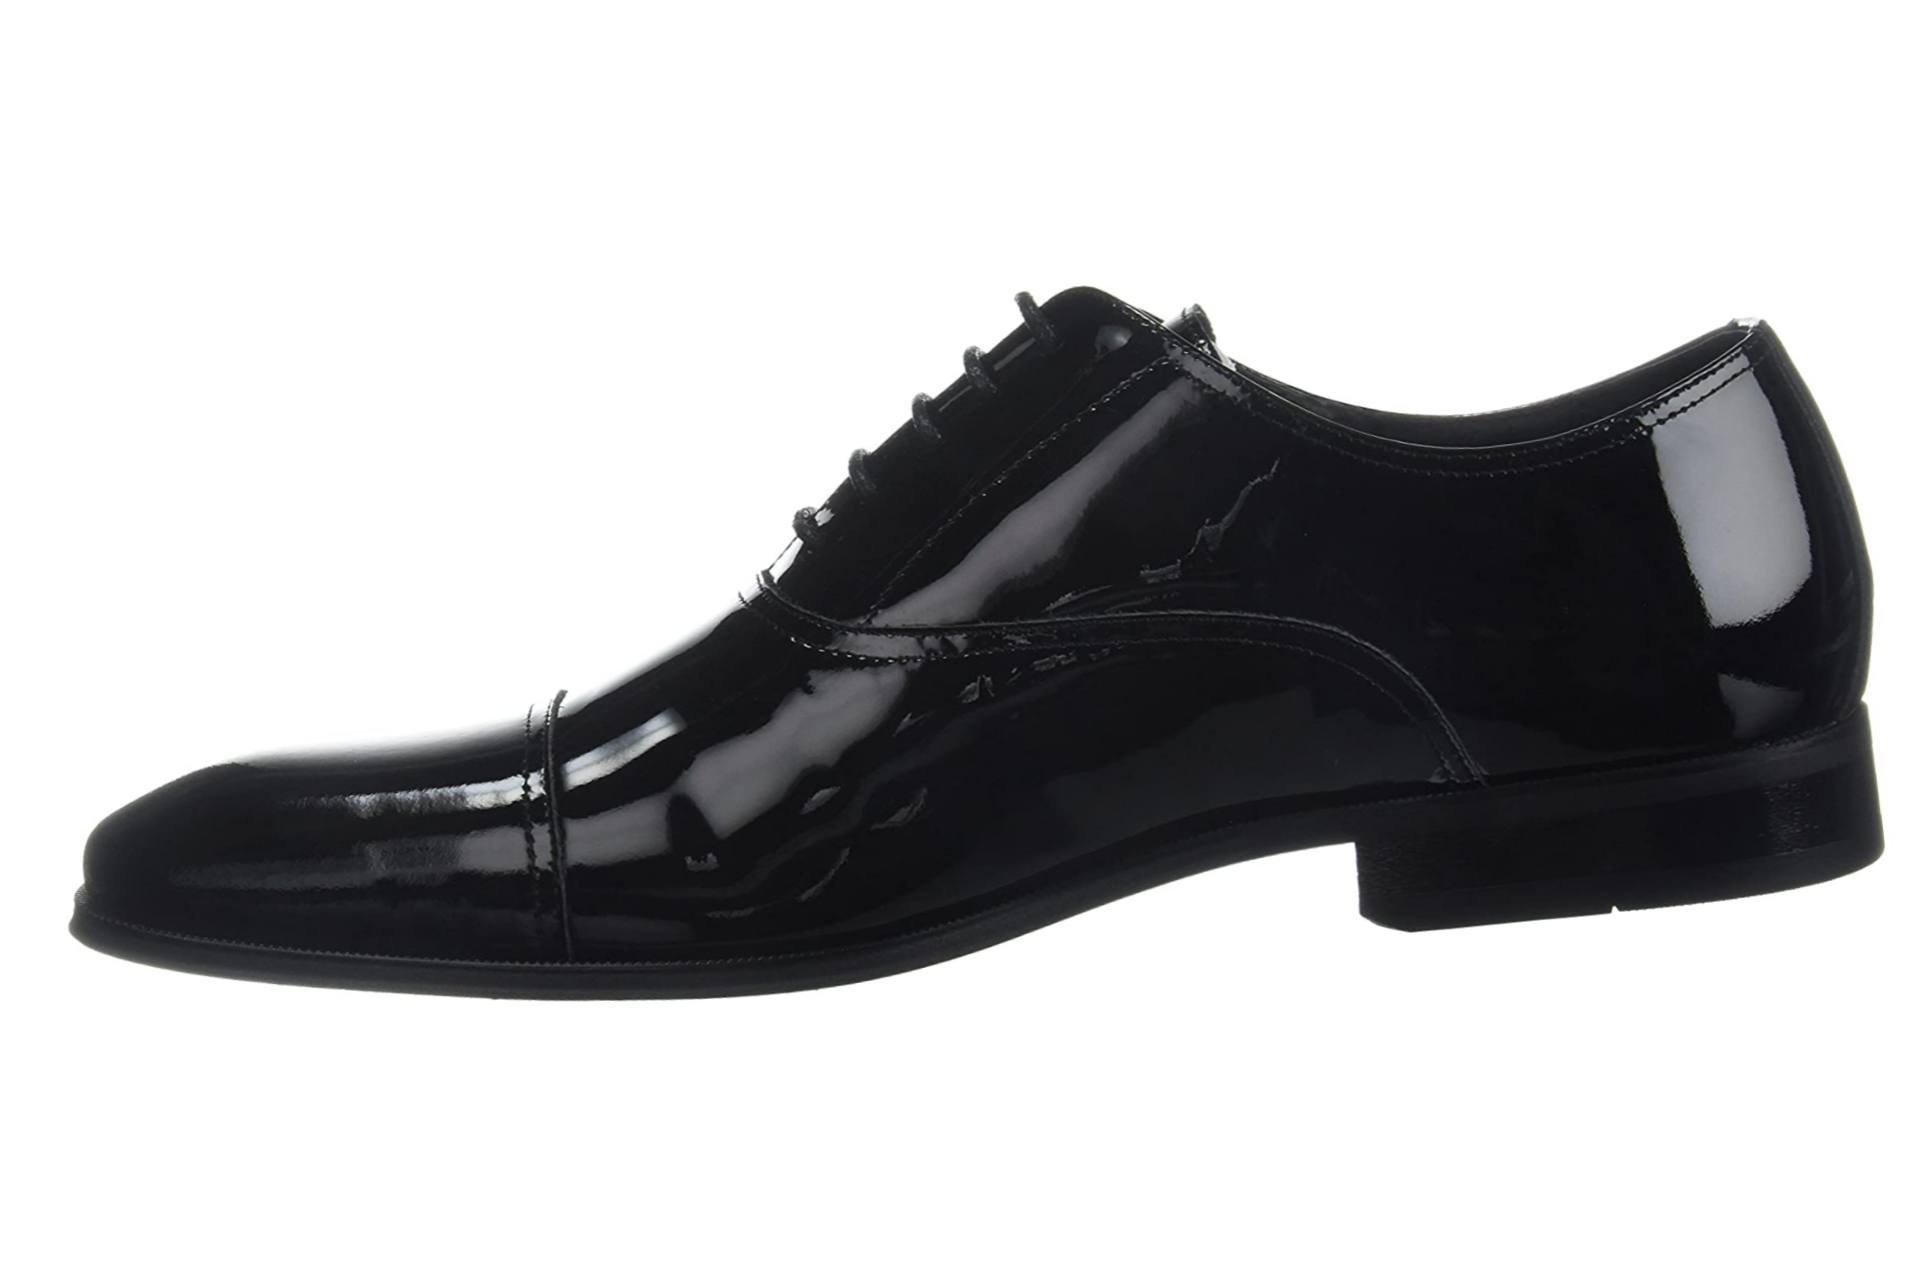 Oxford dress shoe for work